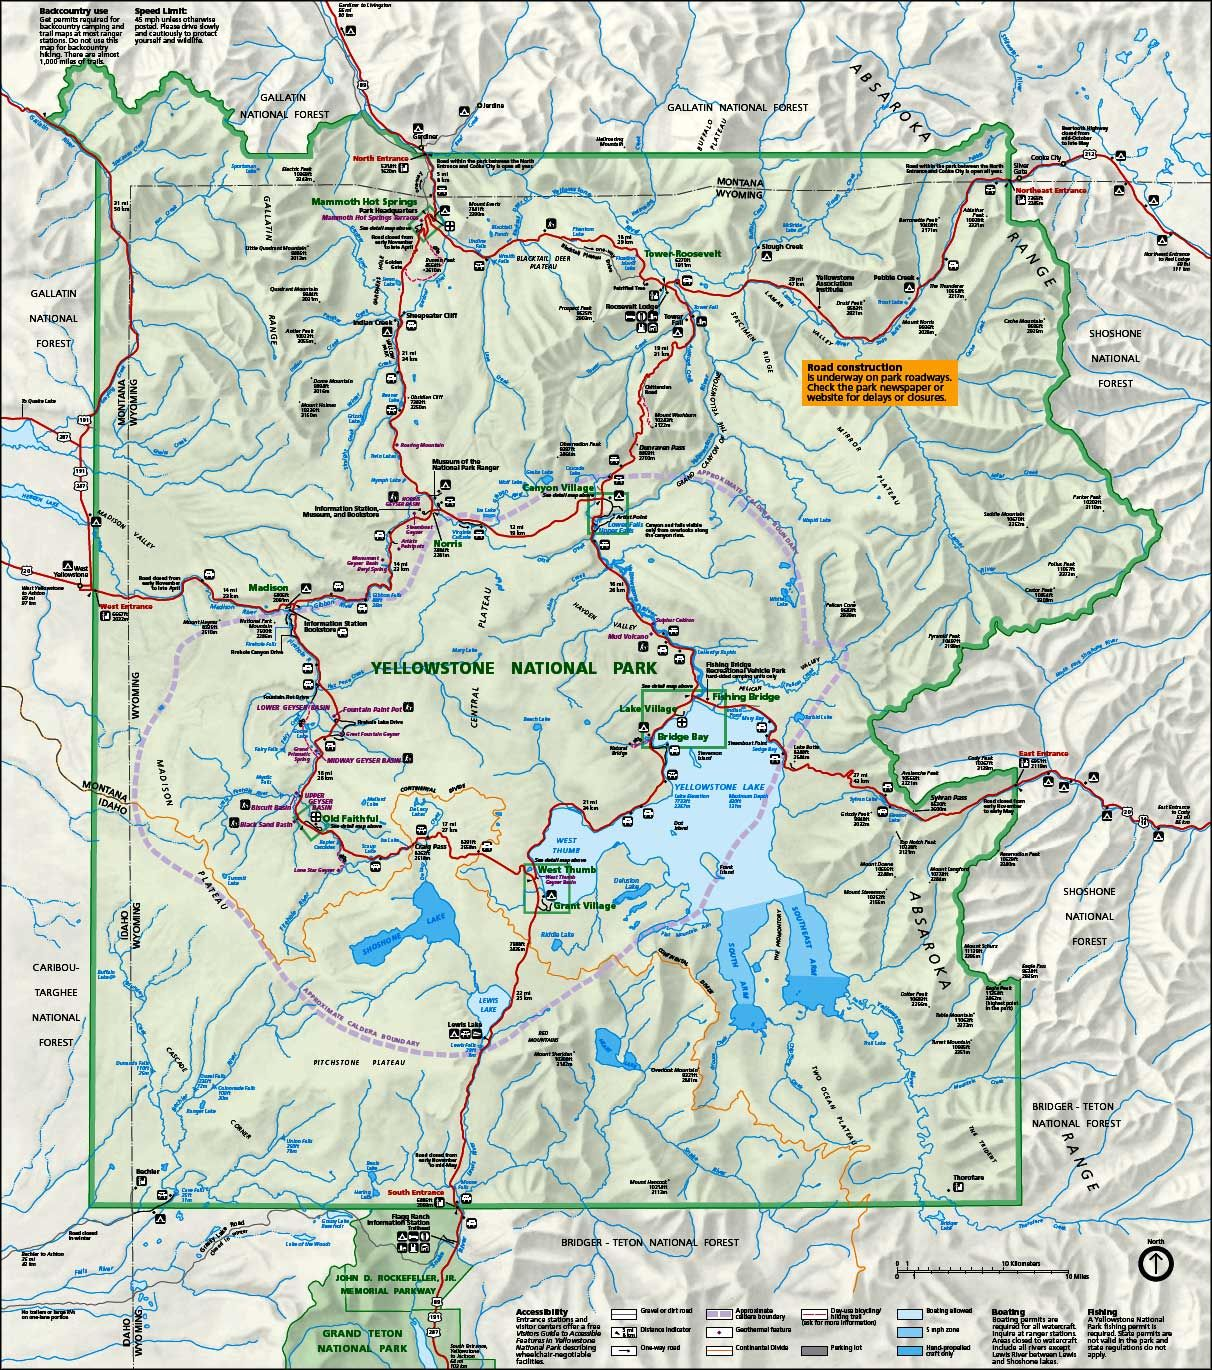 Yellowstone national park is the flagship of the national park